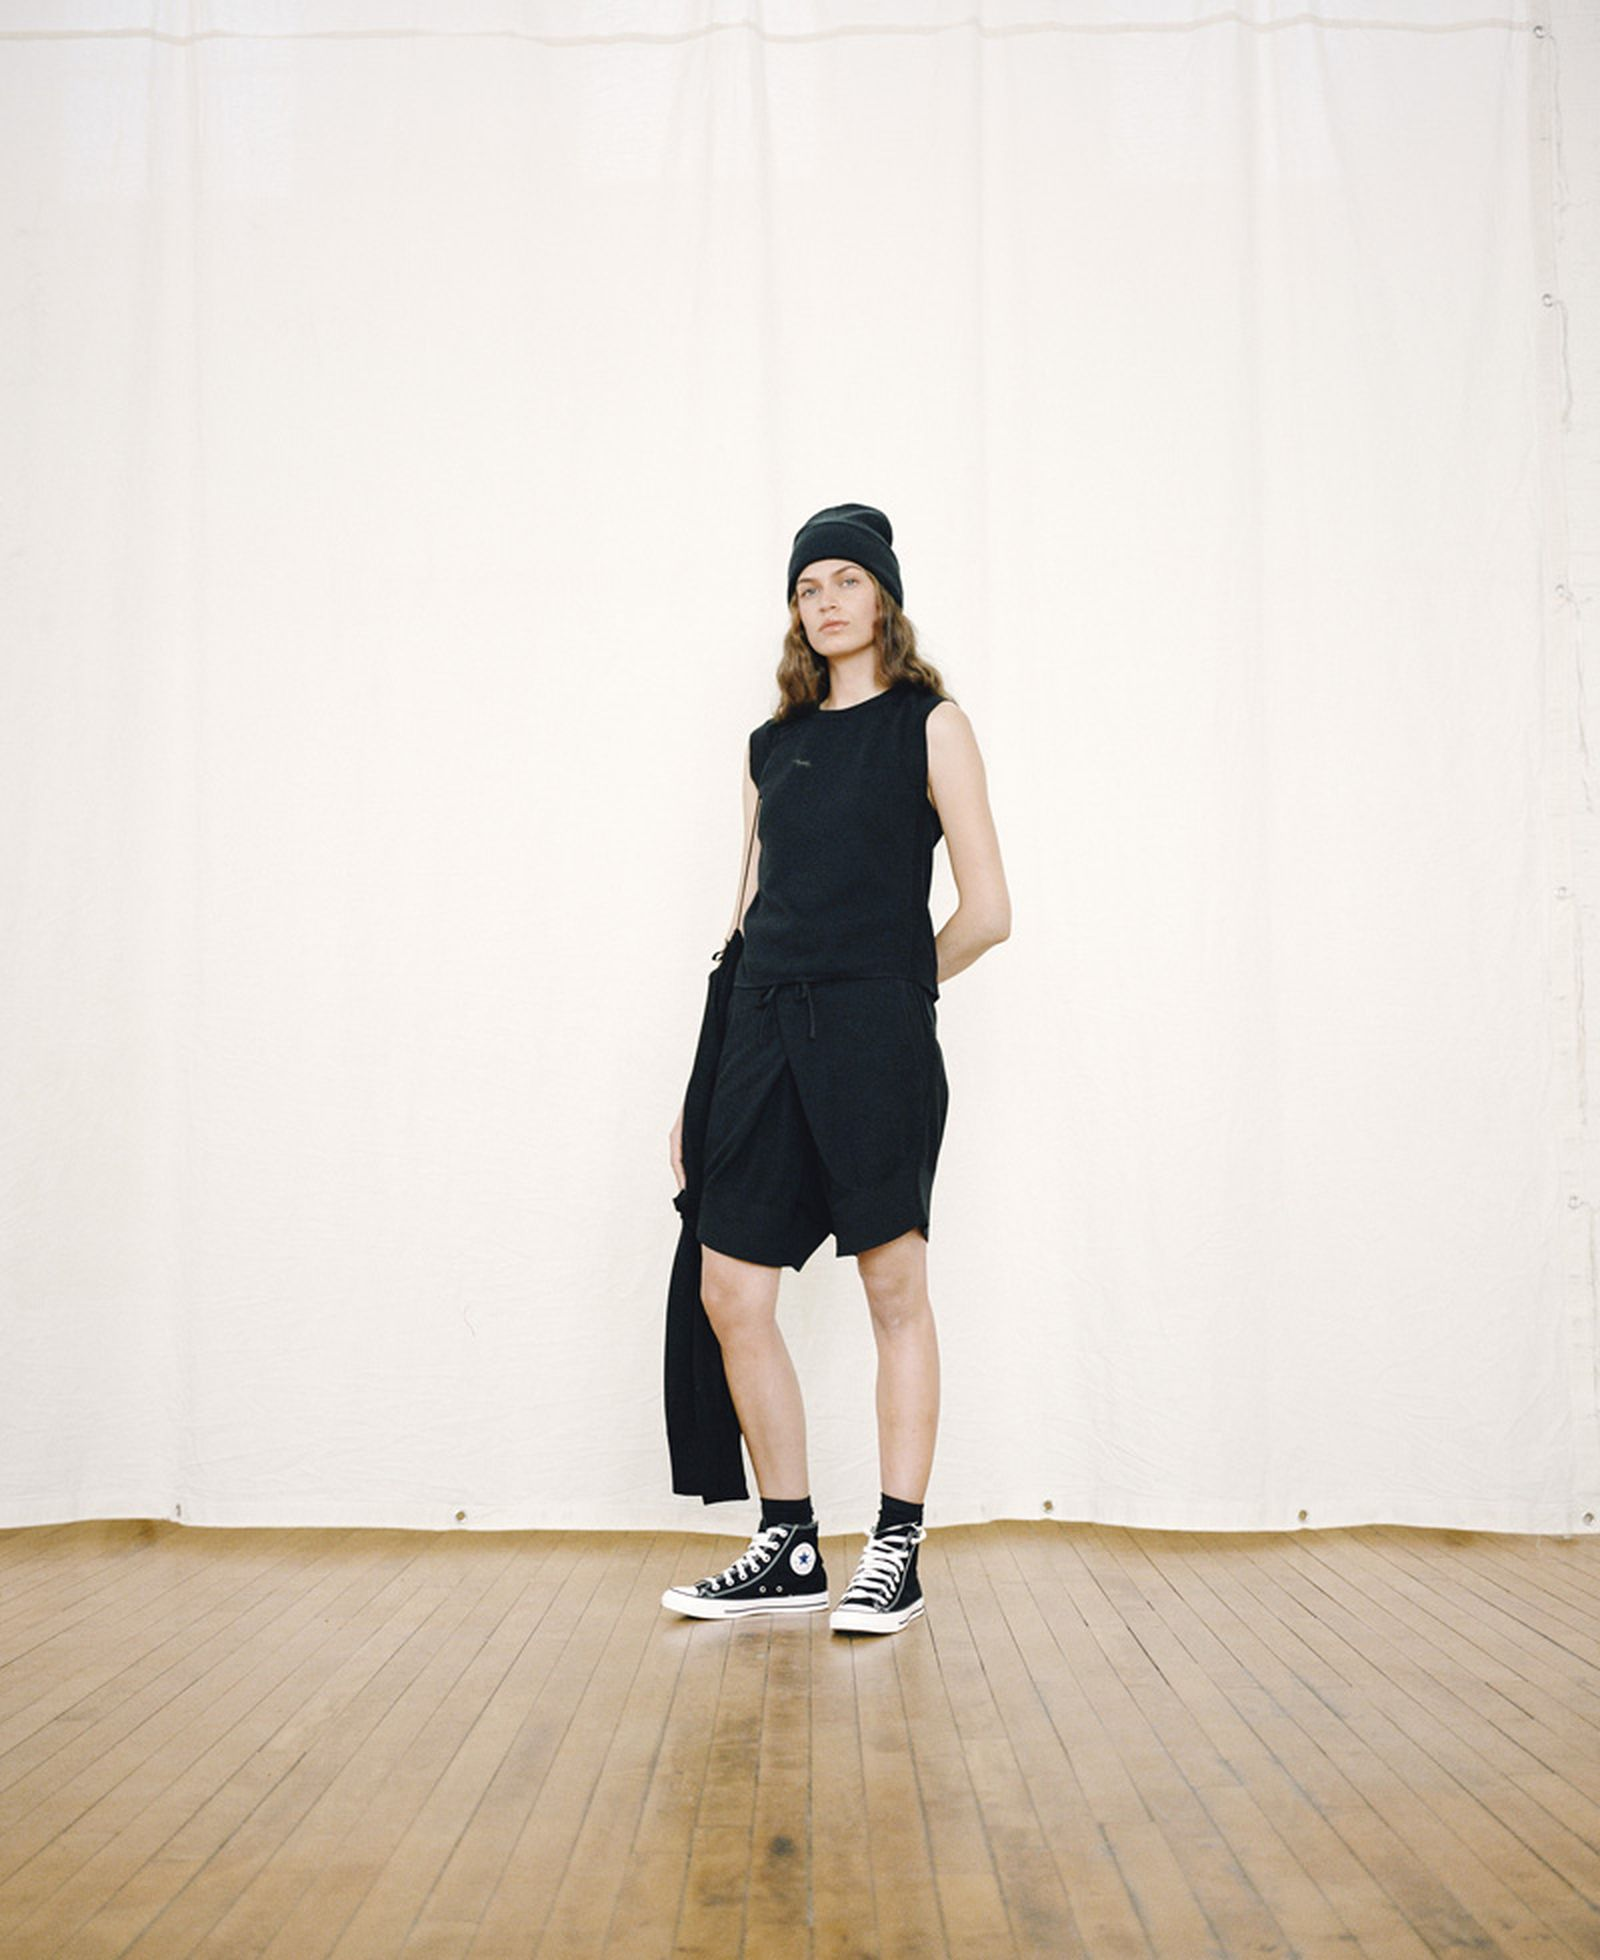 nike-every-stitch-considered-collection-021